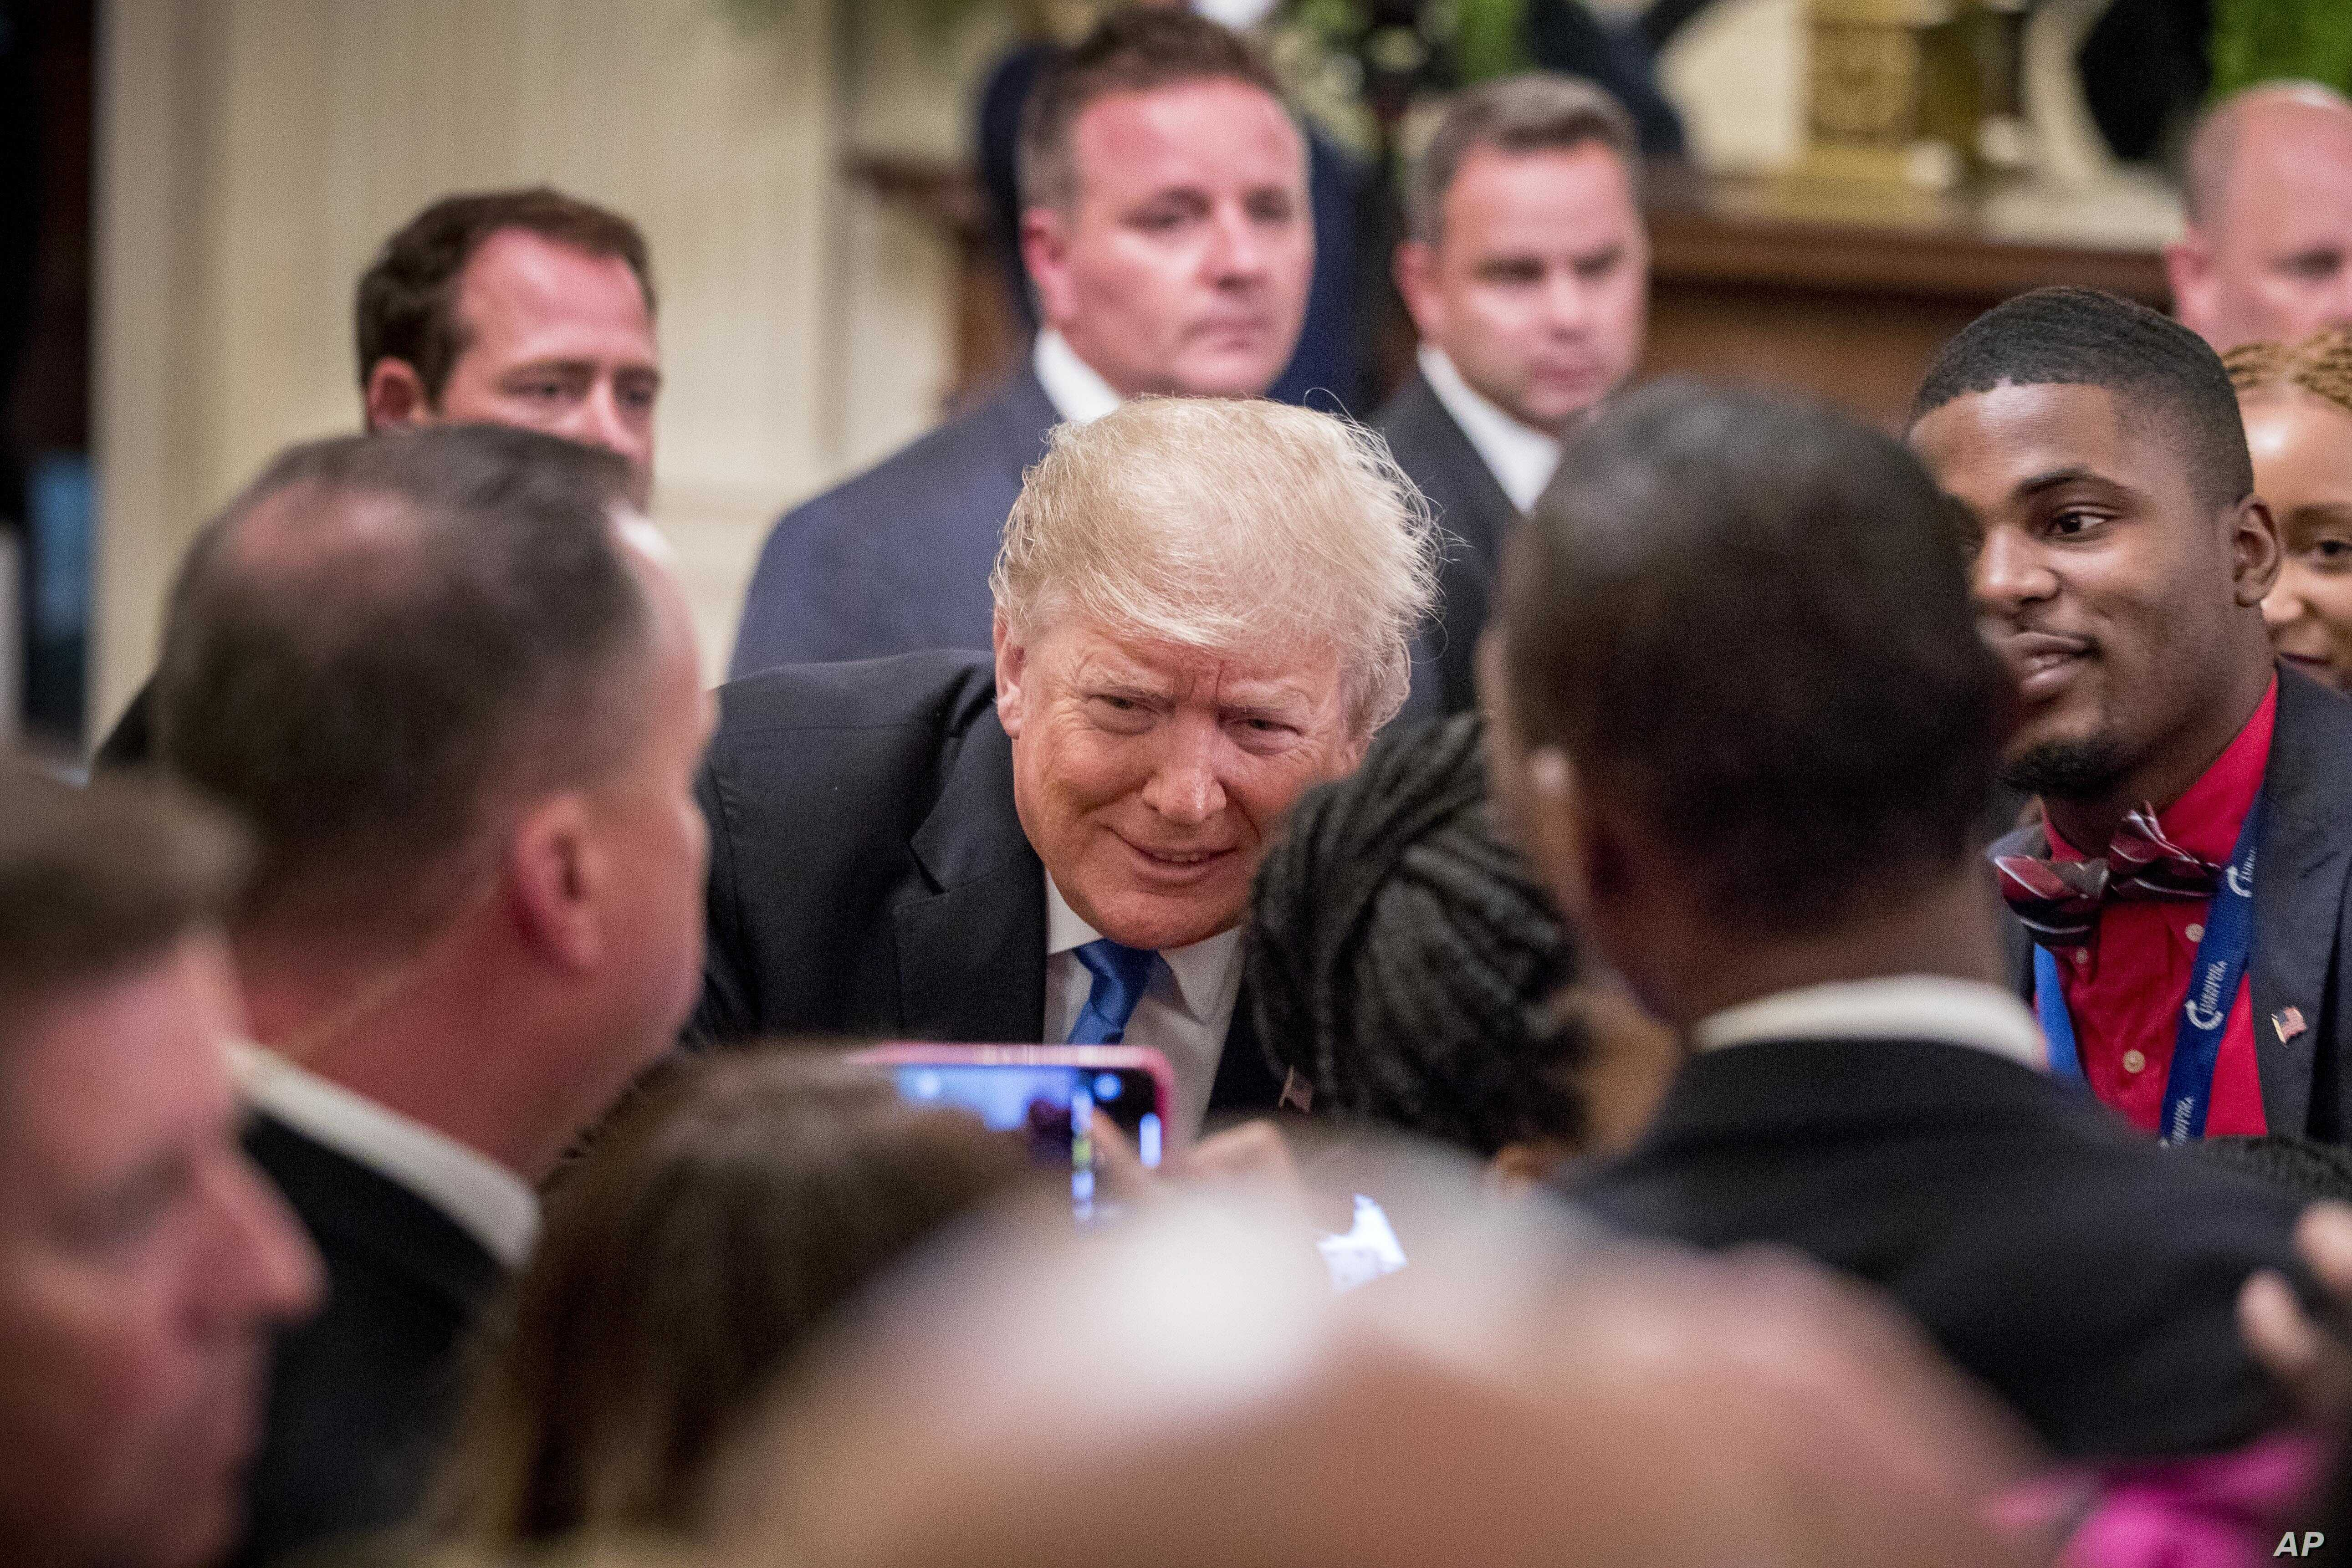 President Donald Trump takes a photograph with a member of the audience after speaking at the 2018 Young Black Leadership Summit in the East Room of the White House, Oct. 26, 2018, in Washington.